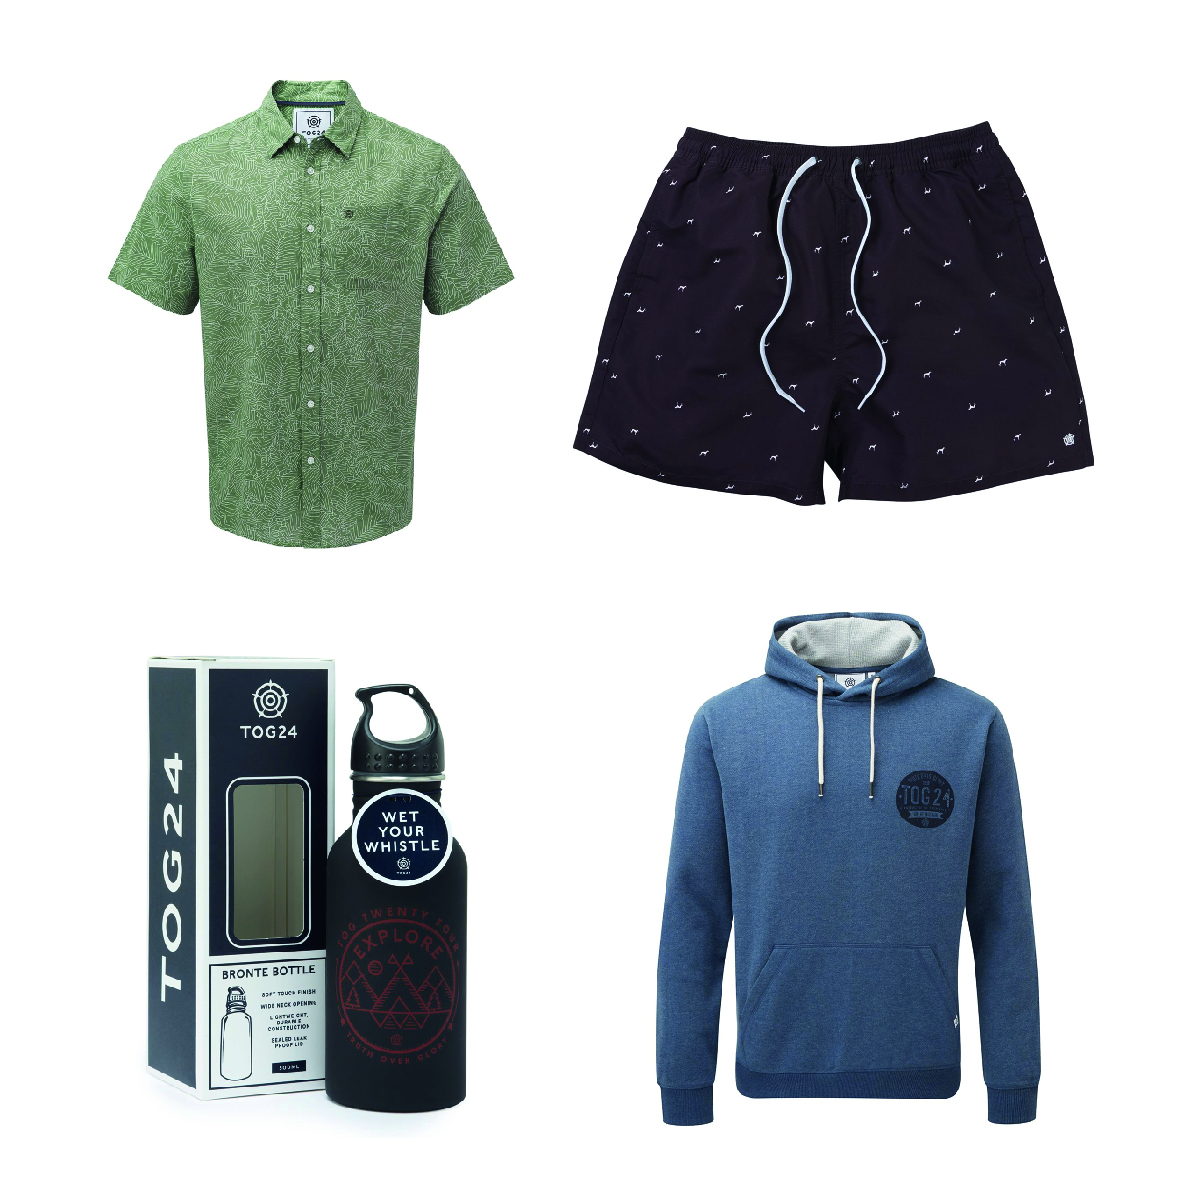 TOG24 - Smart / casual dad? Sporty dad? Laidback dad? Dad-soon-to-be-holiday?Pop into Tog24 for gifts he'll love.